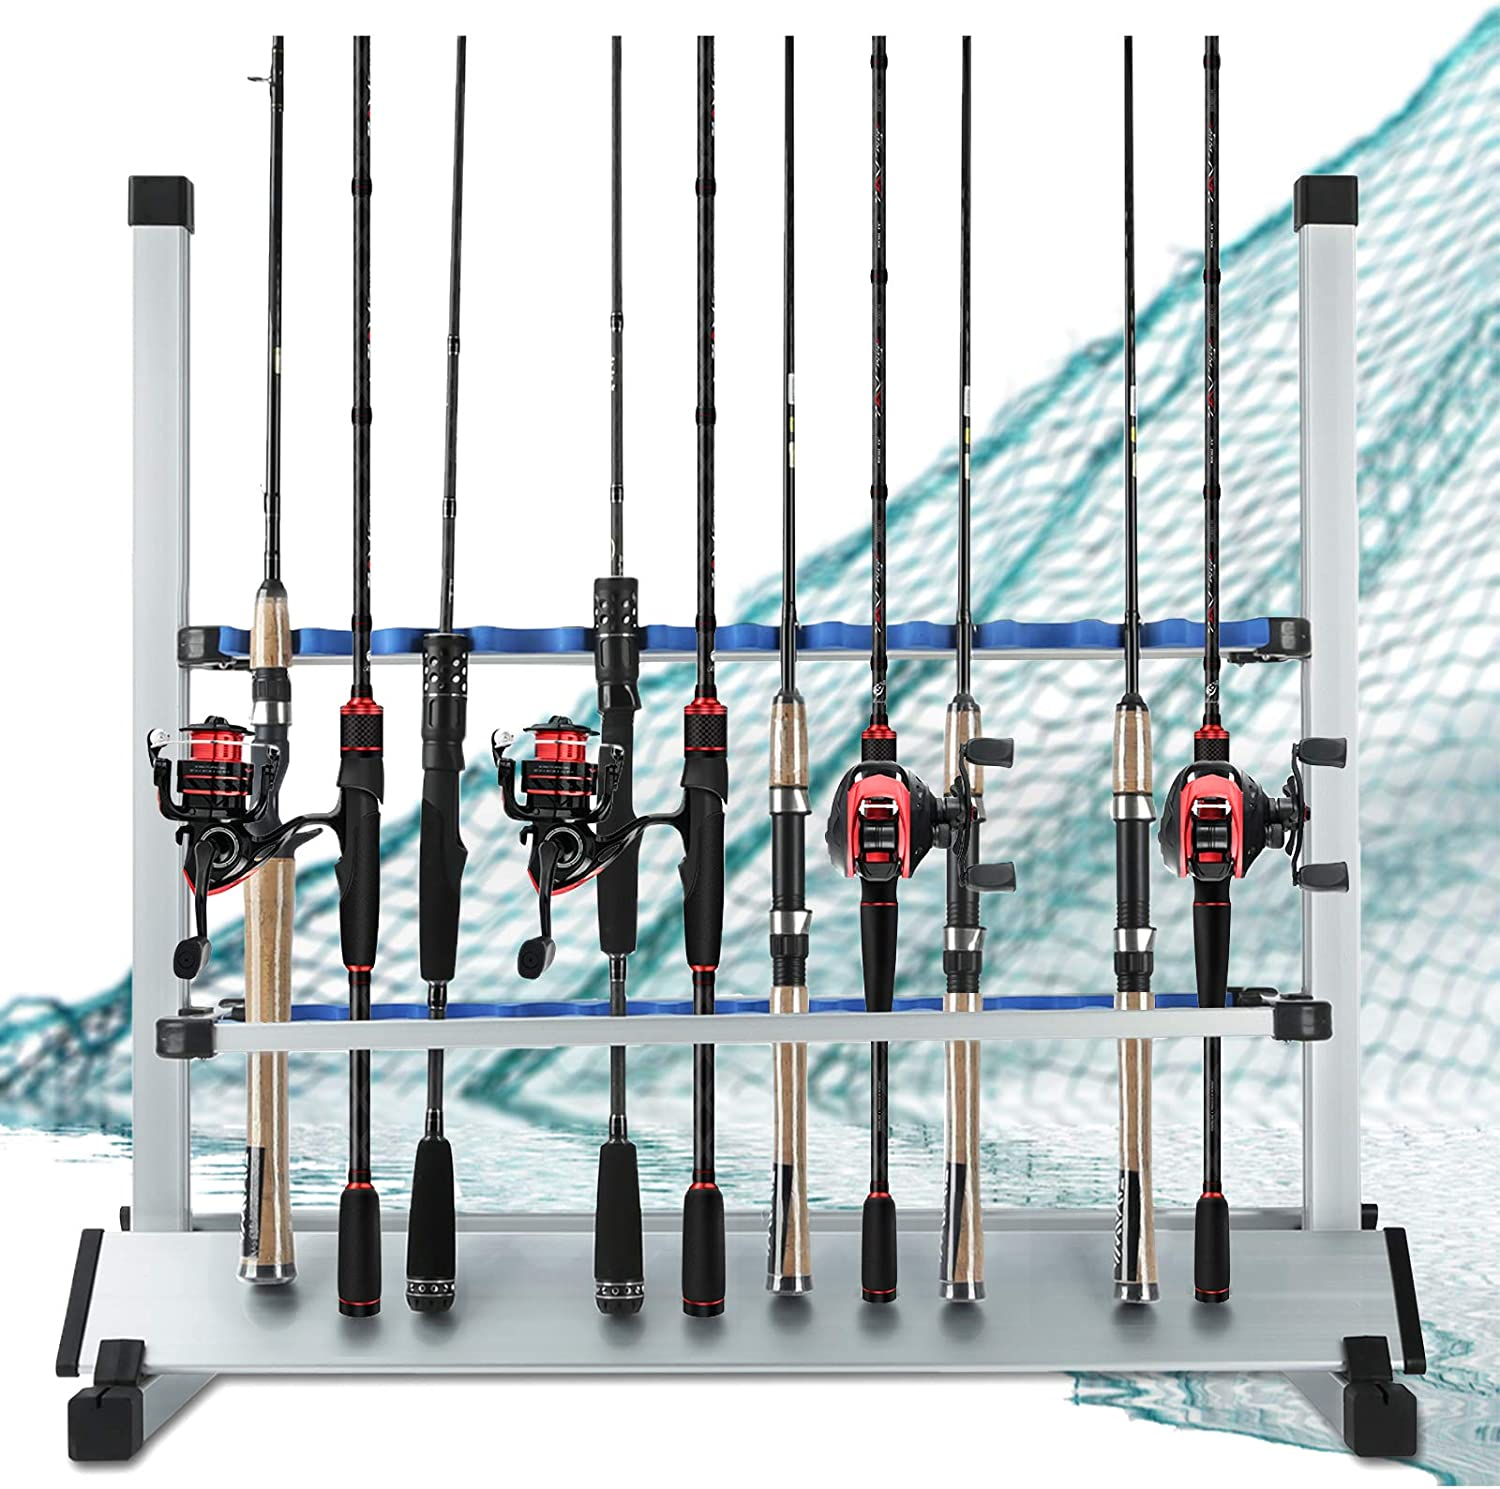 LUXHMOX Fishing-Rod Holder Rack Holds 24 Any Type of Rods and Storage Organizer Combo for Garage